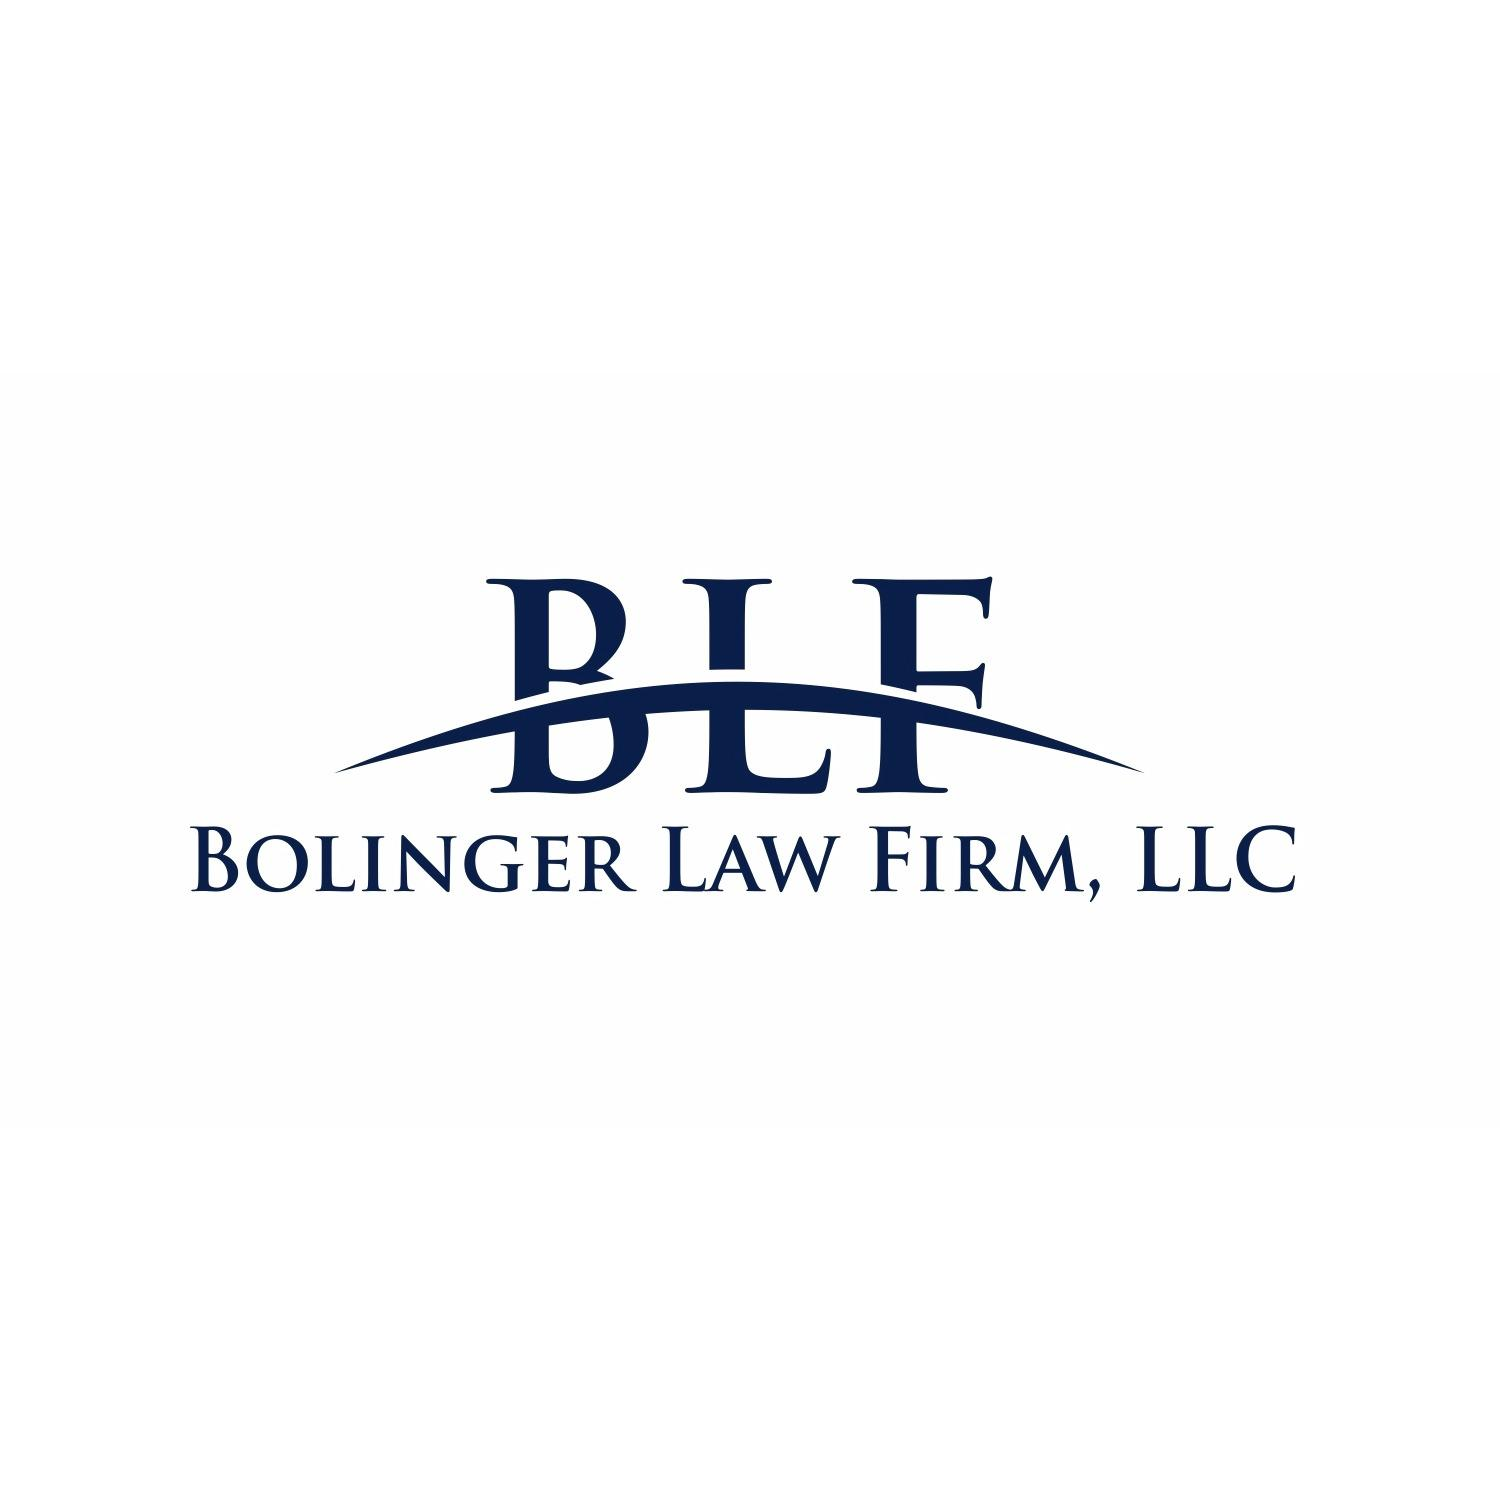 Bolinger Law Firm, LLC